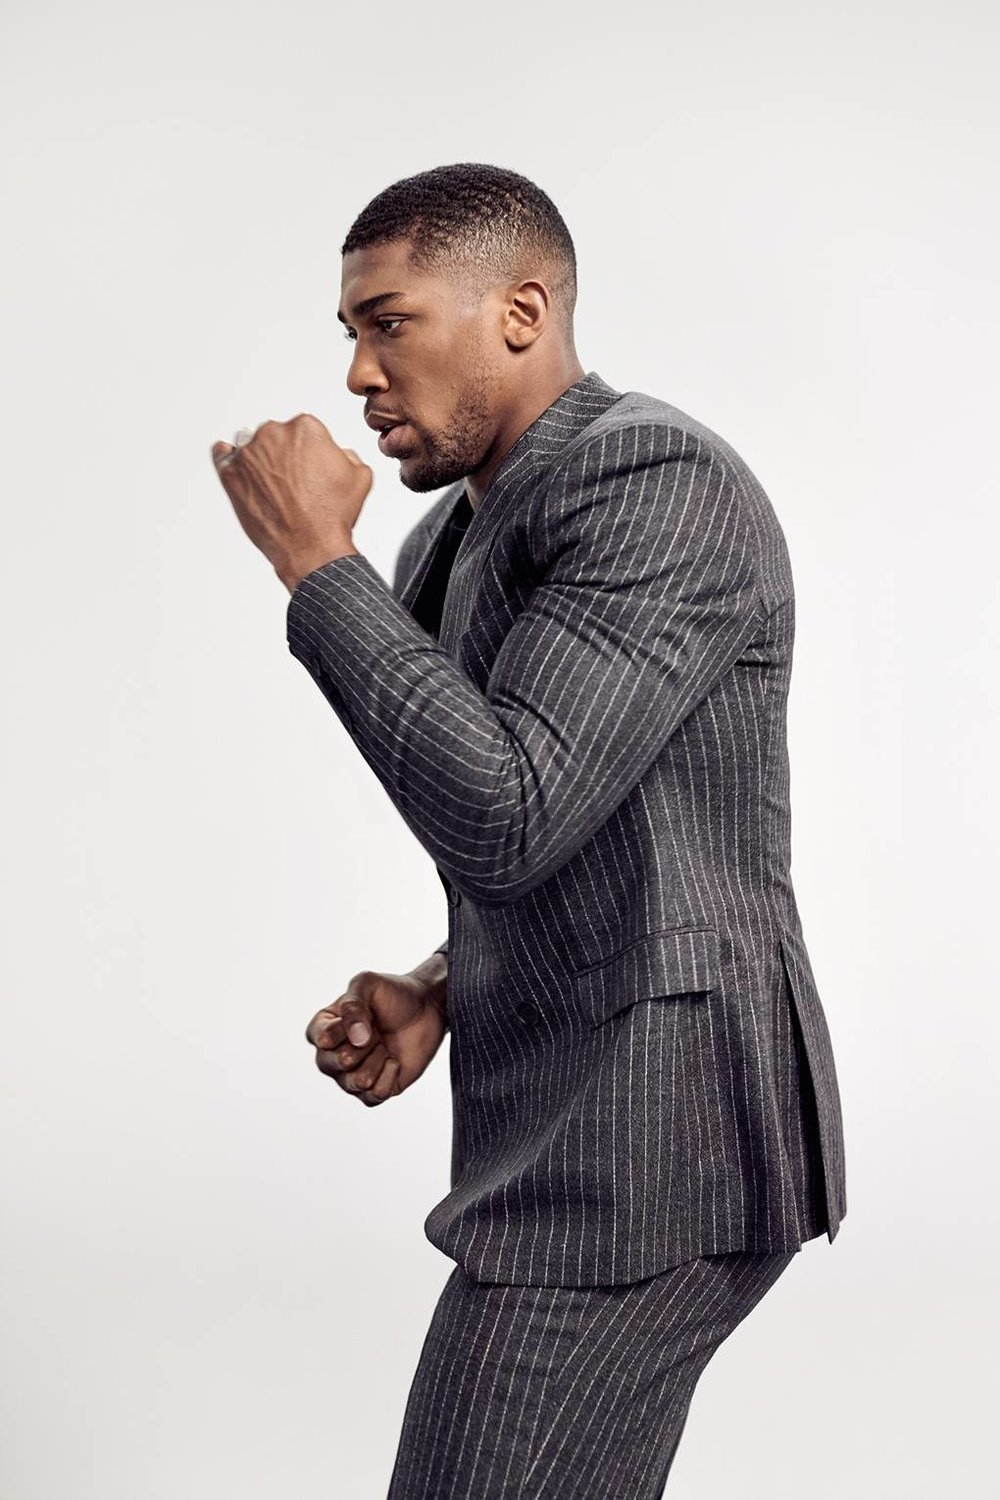 anthony-joshua-03-gq-24jul18_b.jpg